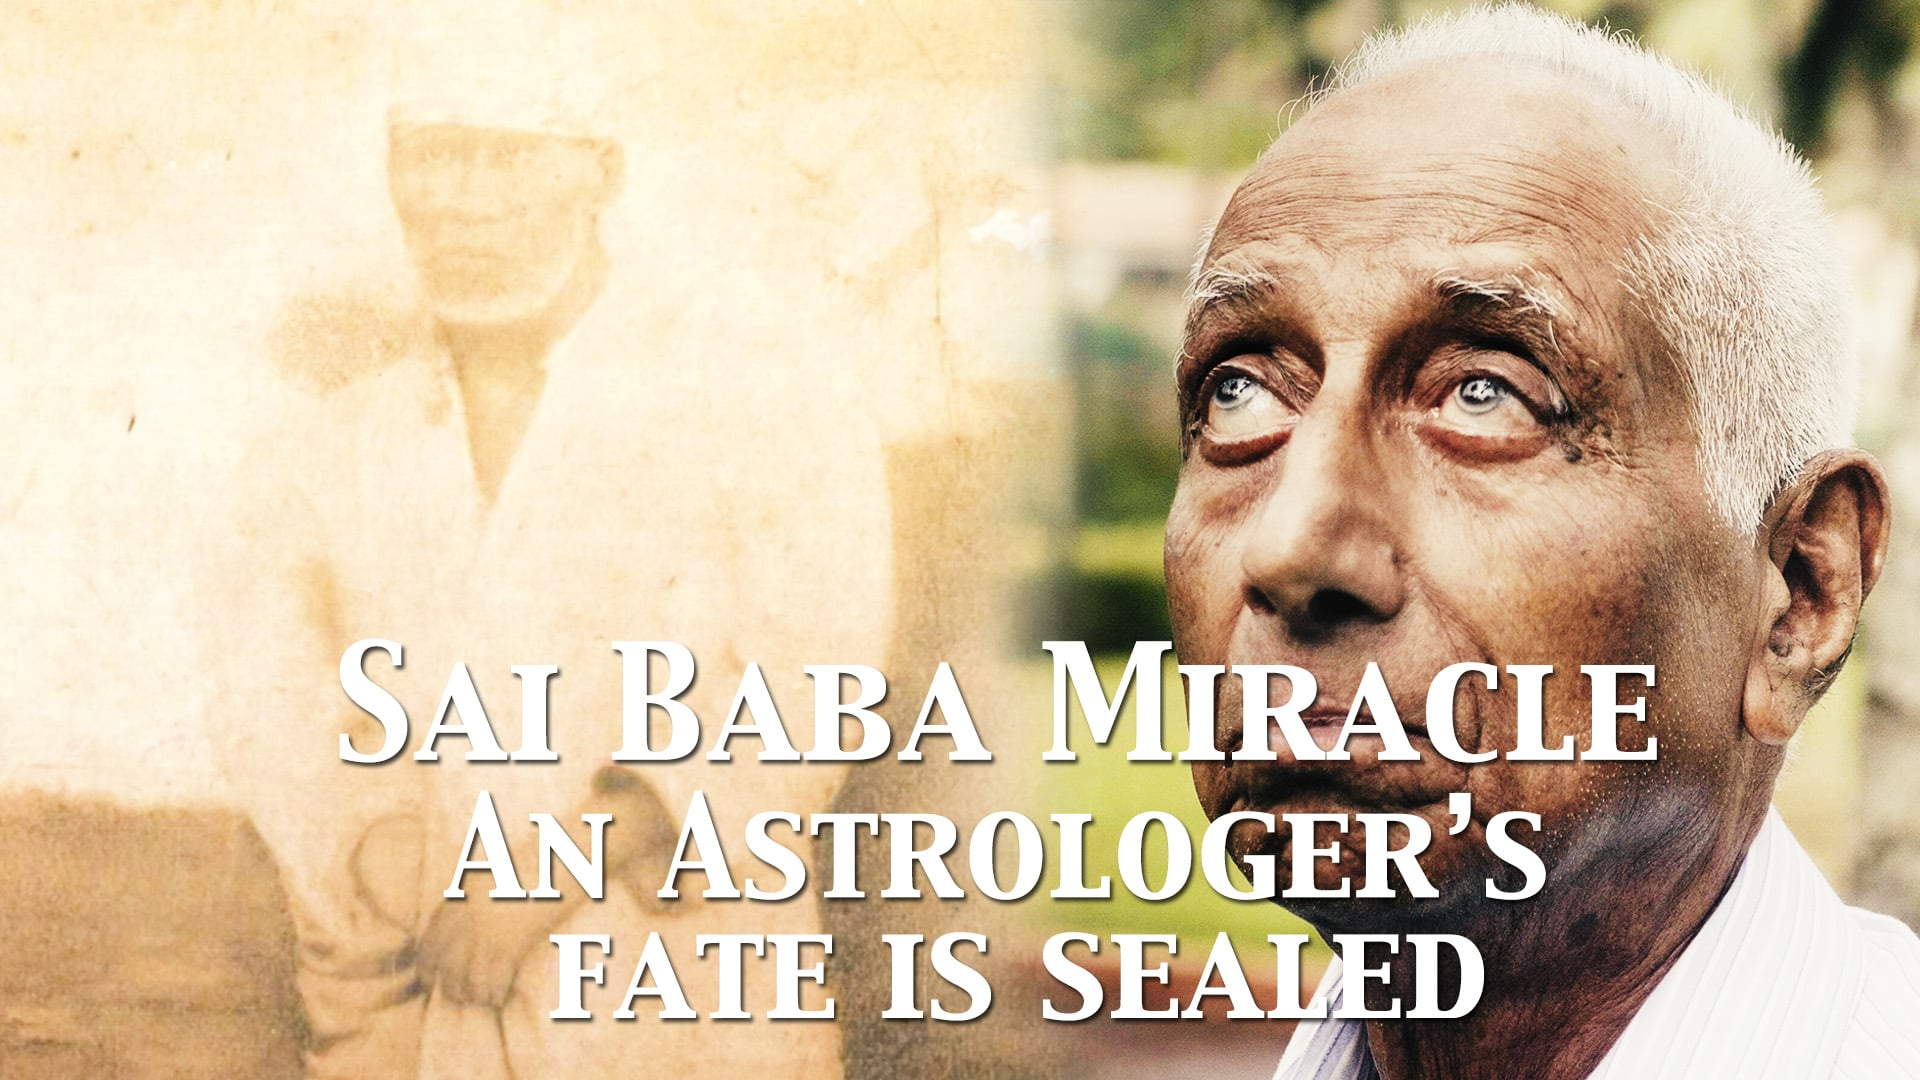 An Astrologer's Fate is Sealed